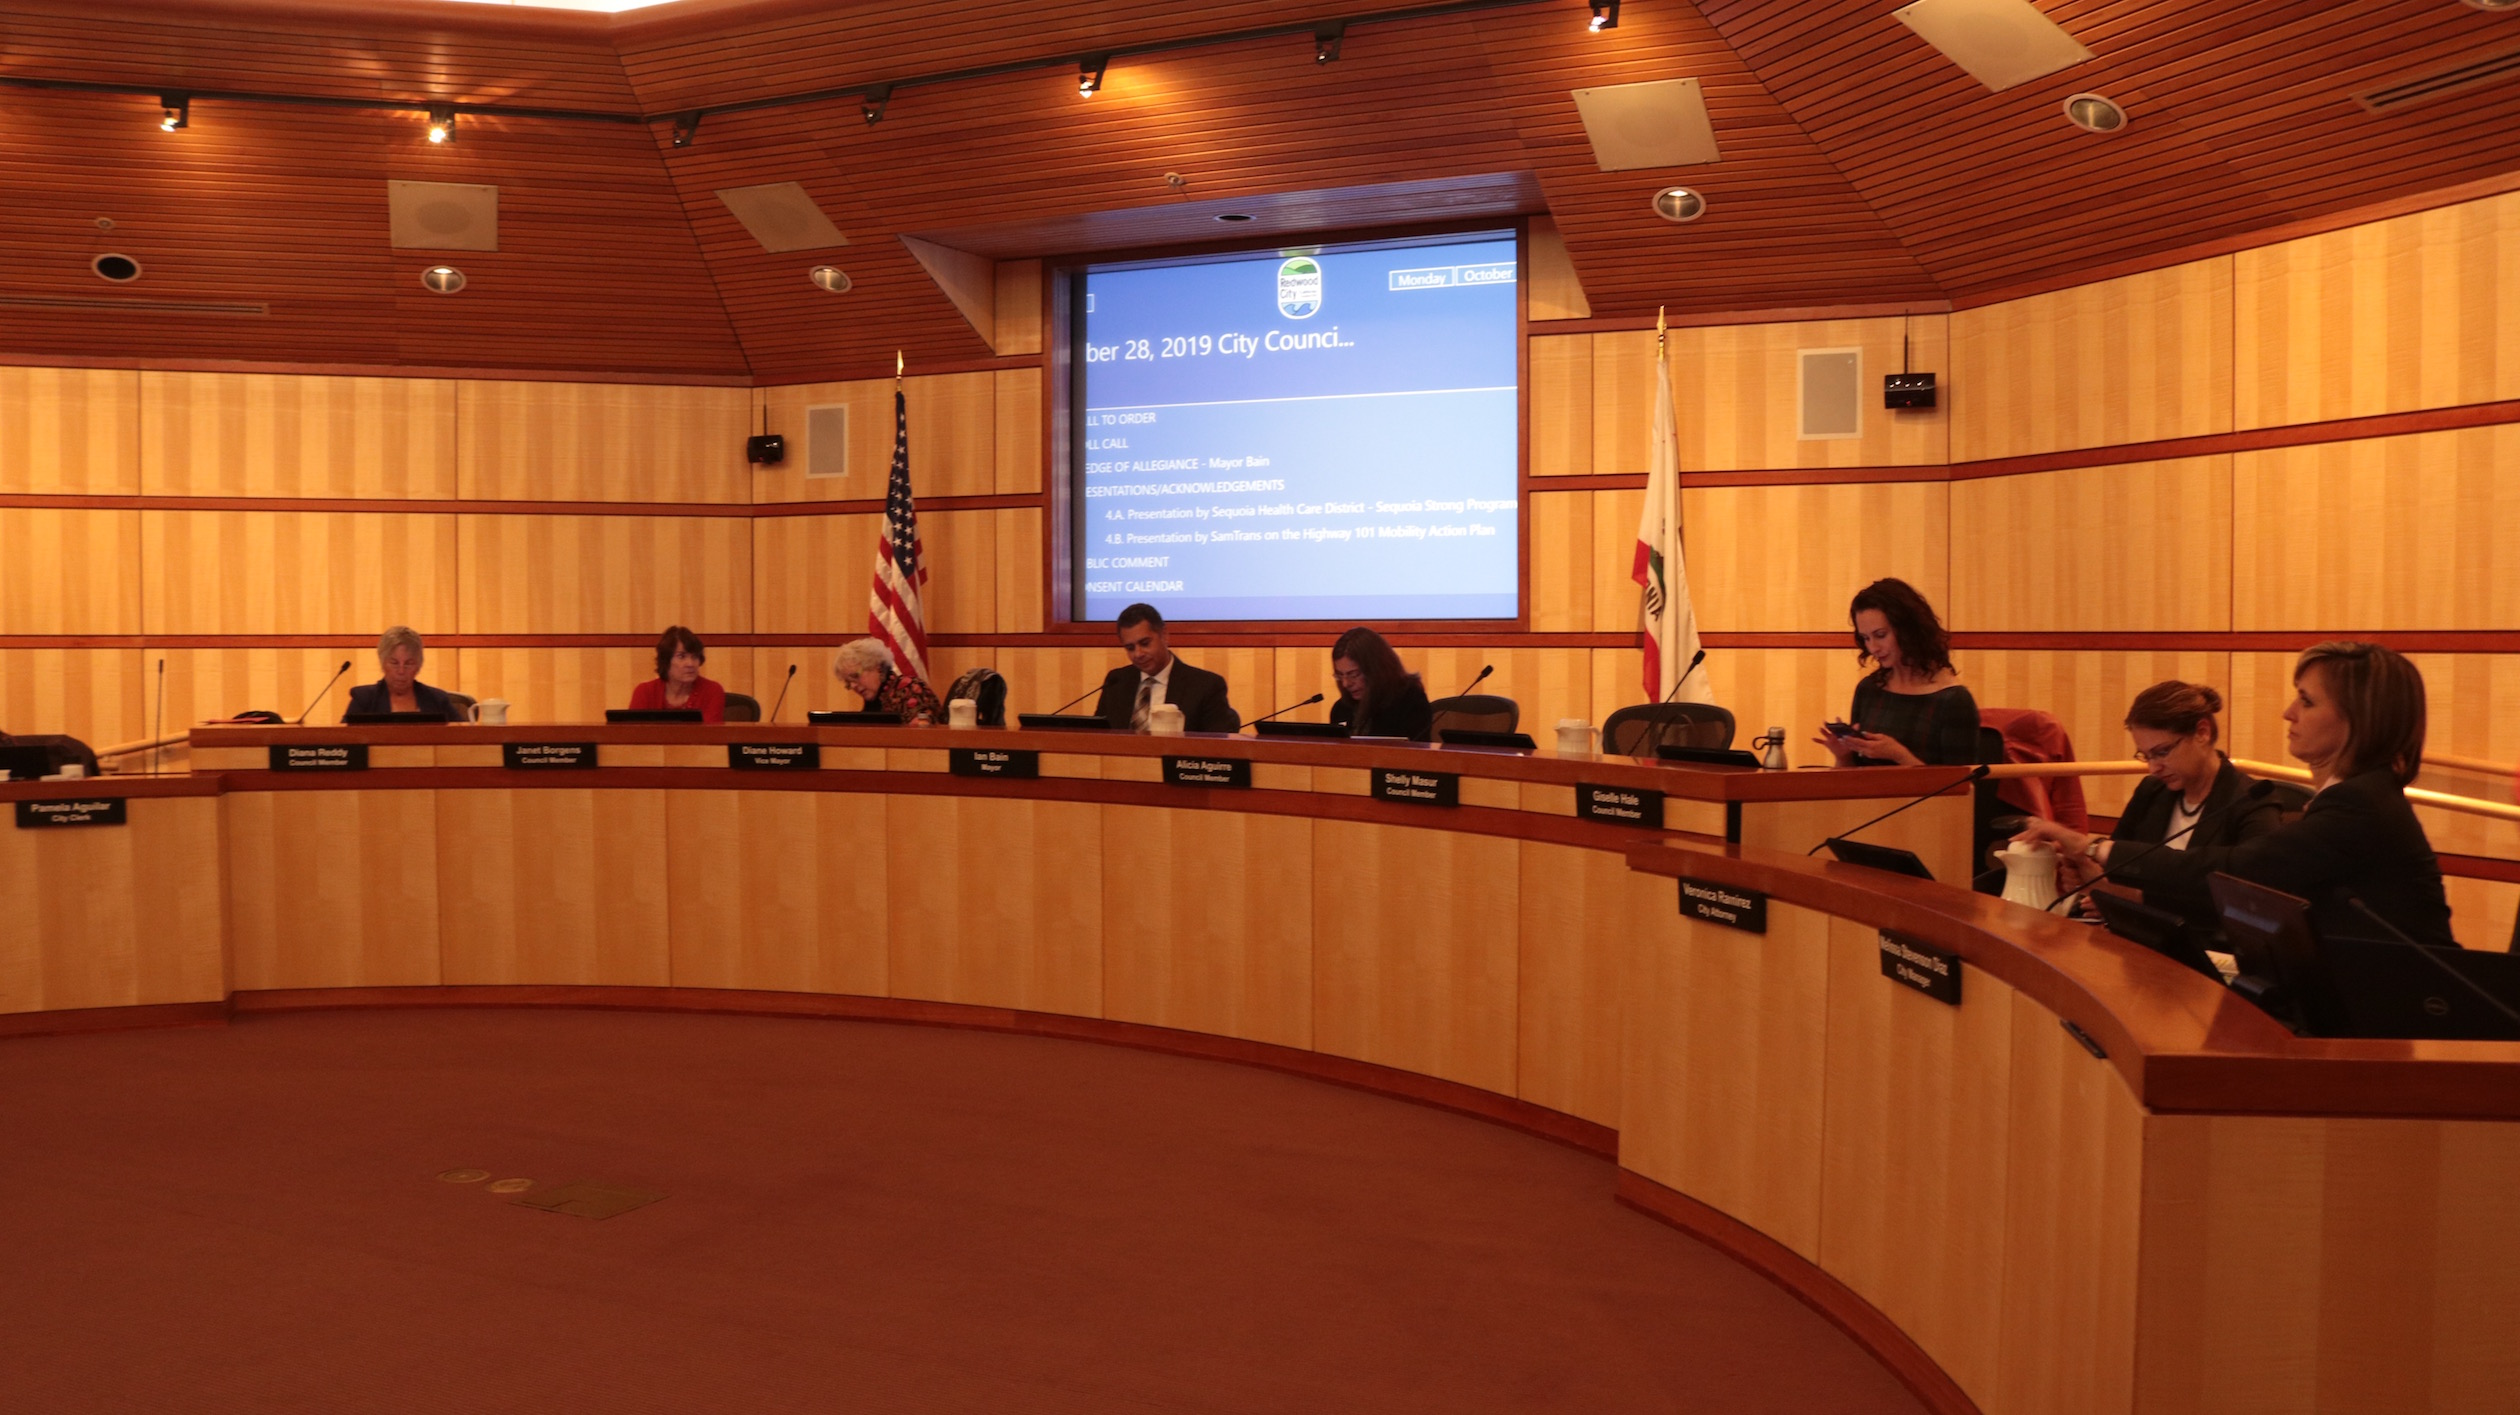 Redwood City Councilmembers prepare for a meeting to discuss an ordinance capping rent increases and setting just-cause eviction protections on Monday, Oct. 28, 2019. Tenants advocates in California say they've seen a wave of evictions and rent hikes in anticipation of Assembly Bill 1482. (Amy DiPierro / Peninsula Press)